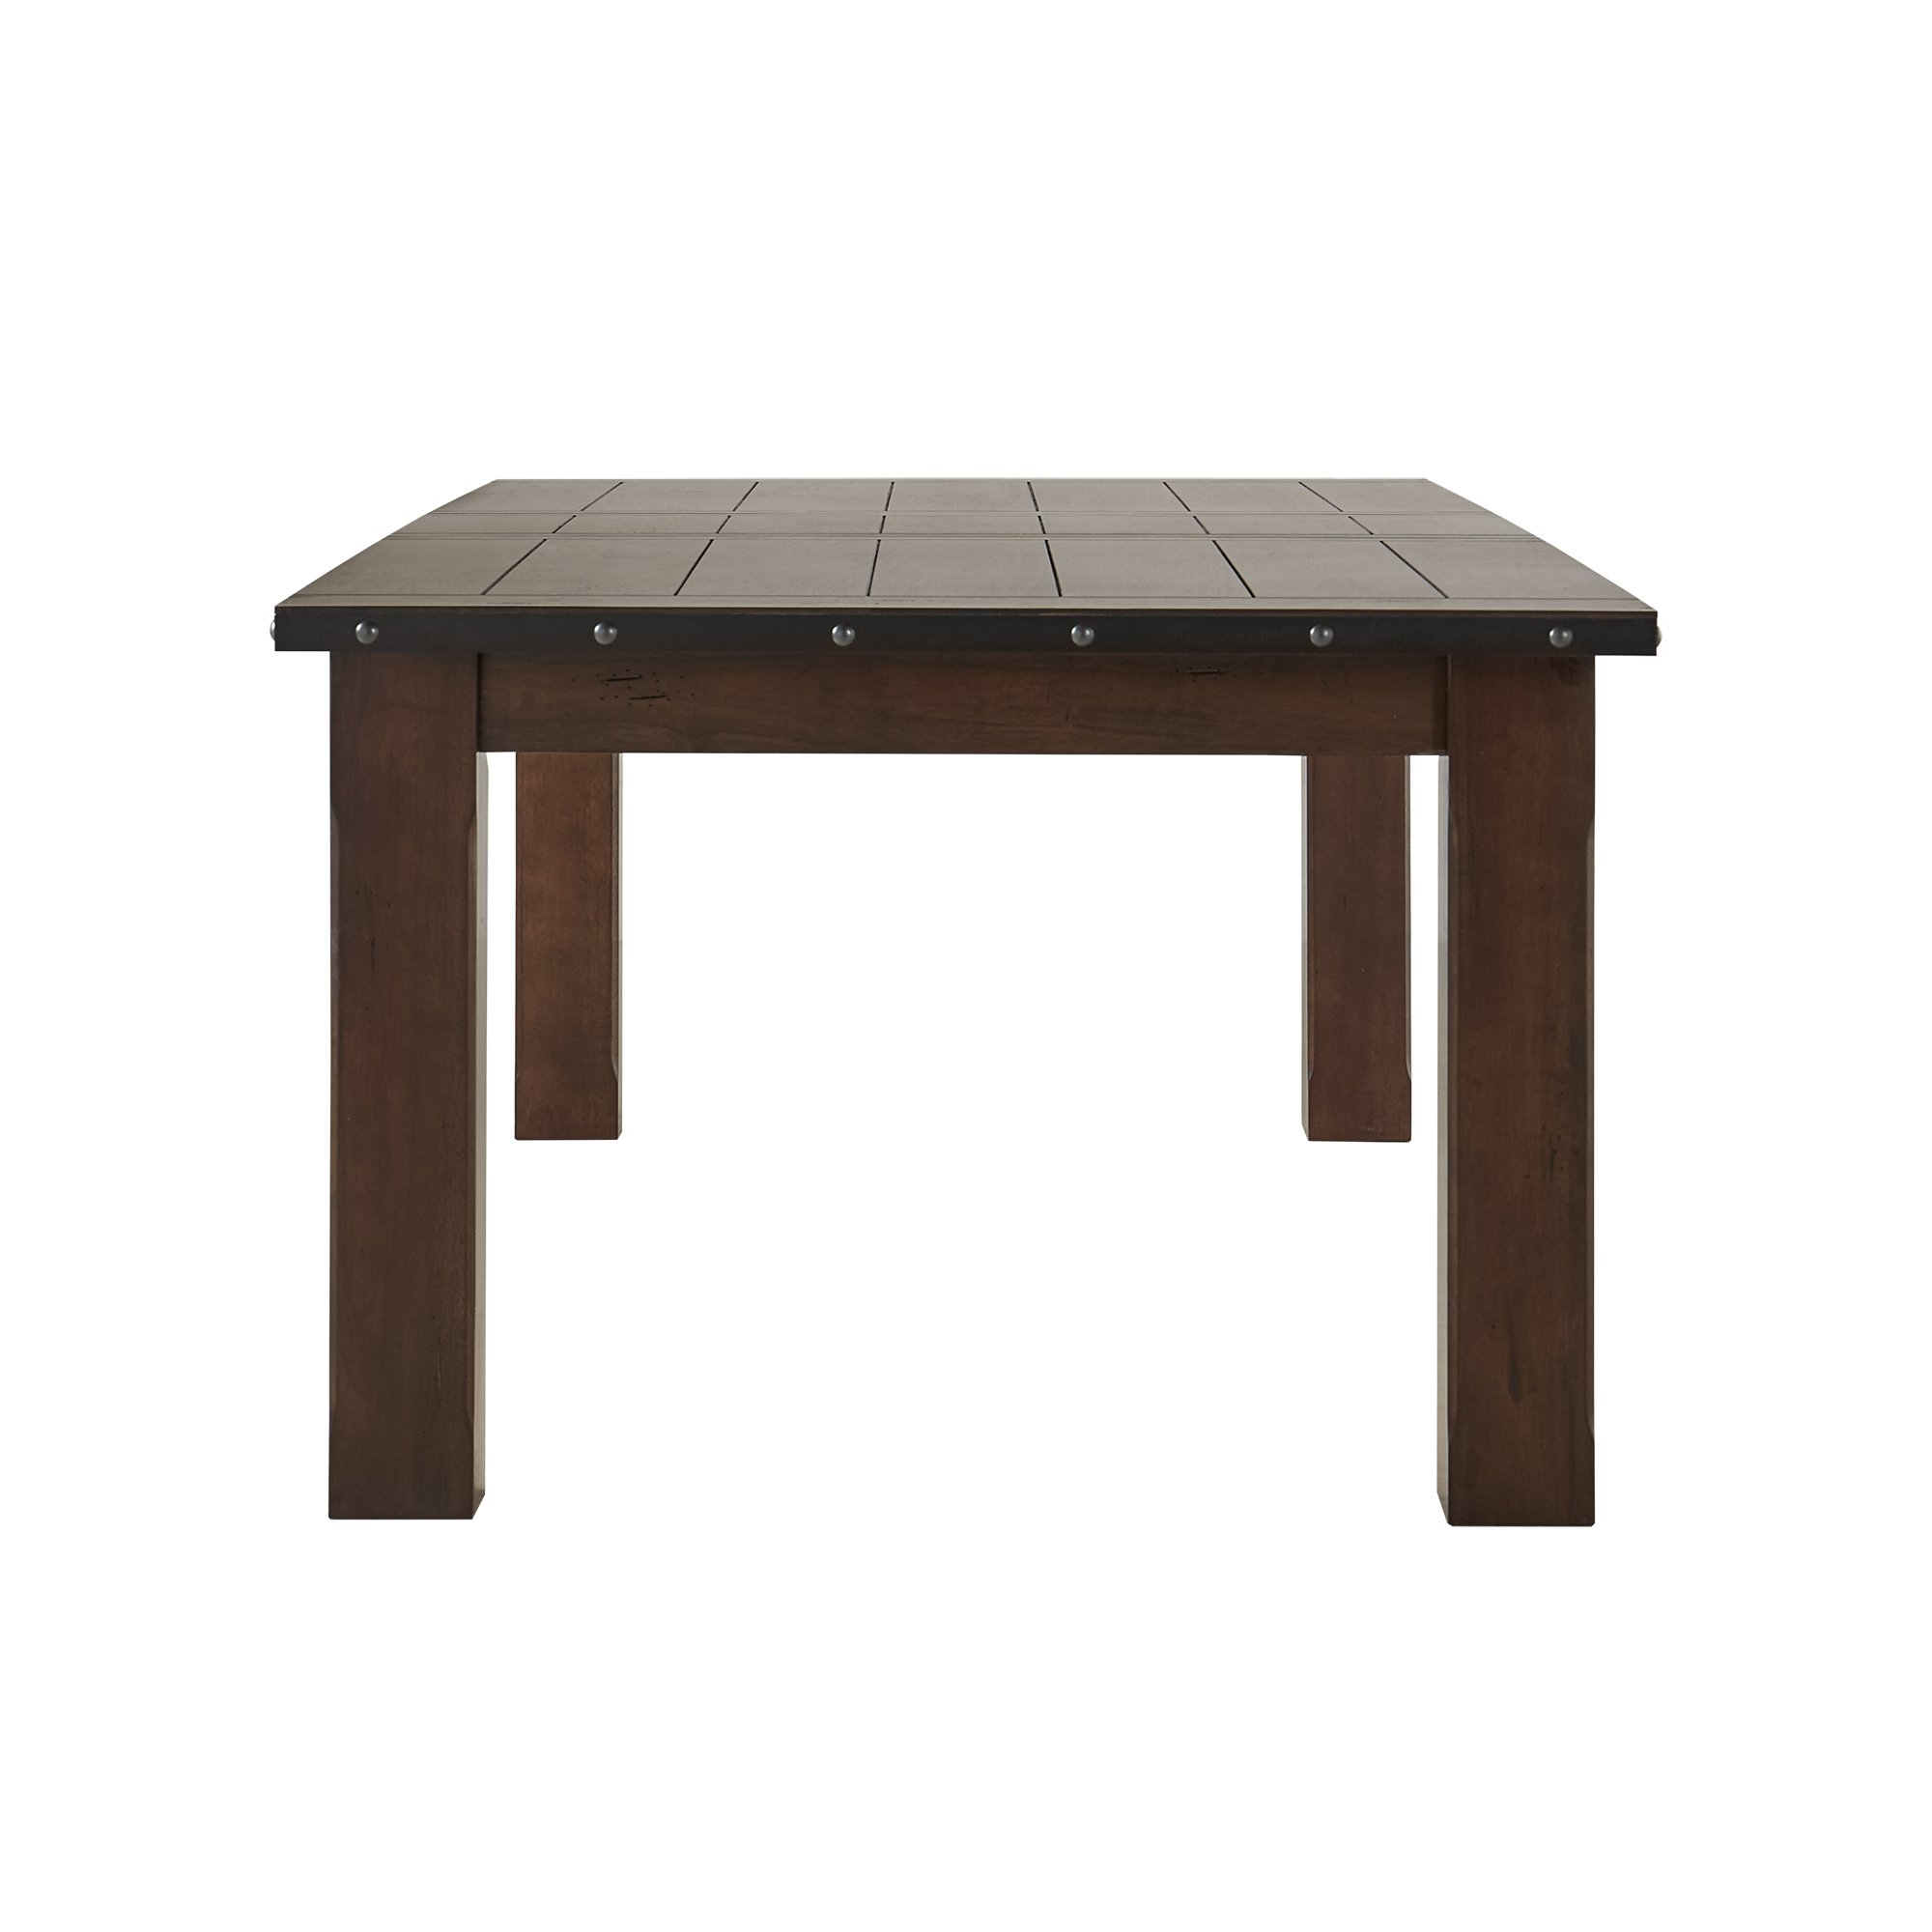 2018 Shop Norwood Antique Oak Finish Extending Table Dining Set - Free within Norwood Rectangle Extension Dining Tables